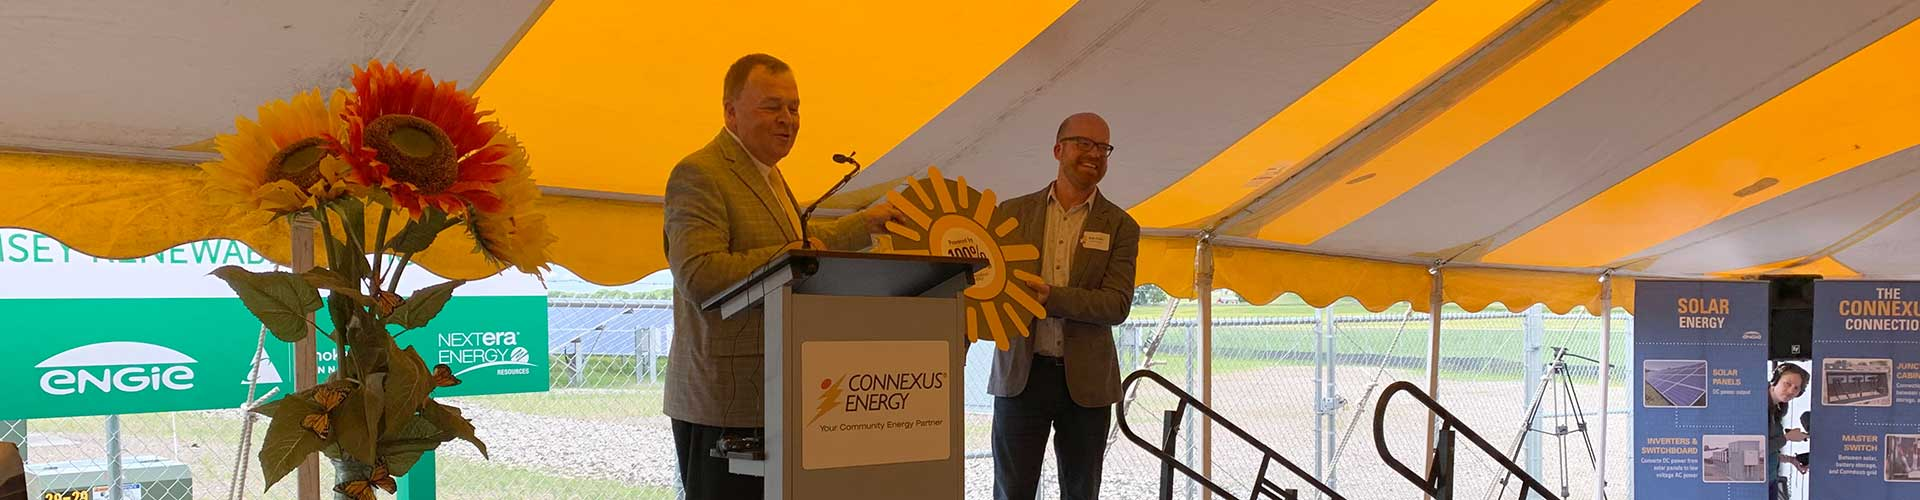 Connexus Energy campus now powered by 100% renewable energy